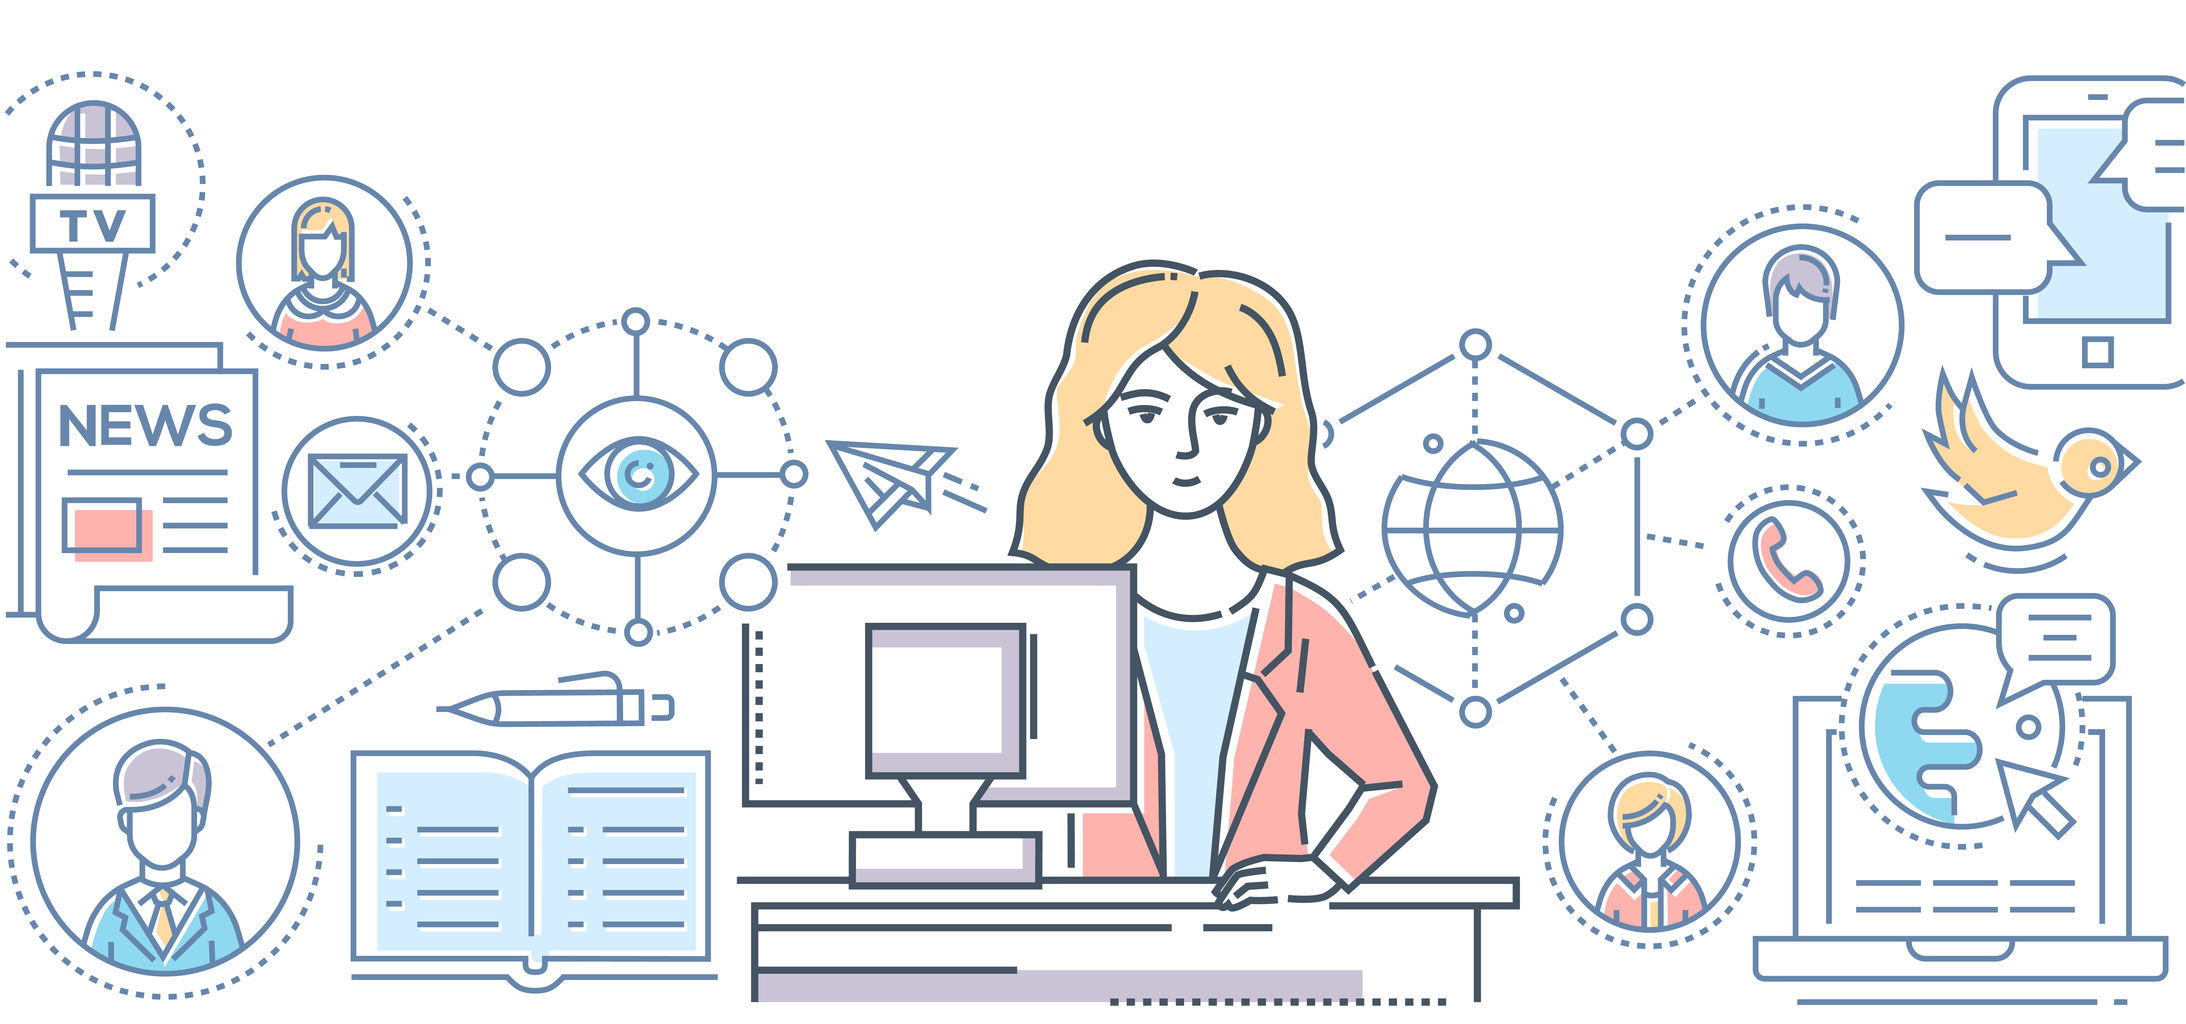 Public relations - line design style illustration on white background. Colorful composition with a female PR worker at her computer, linear images of different types of communications, TV, news, SMM